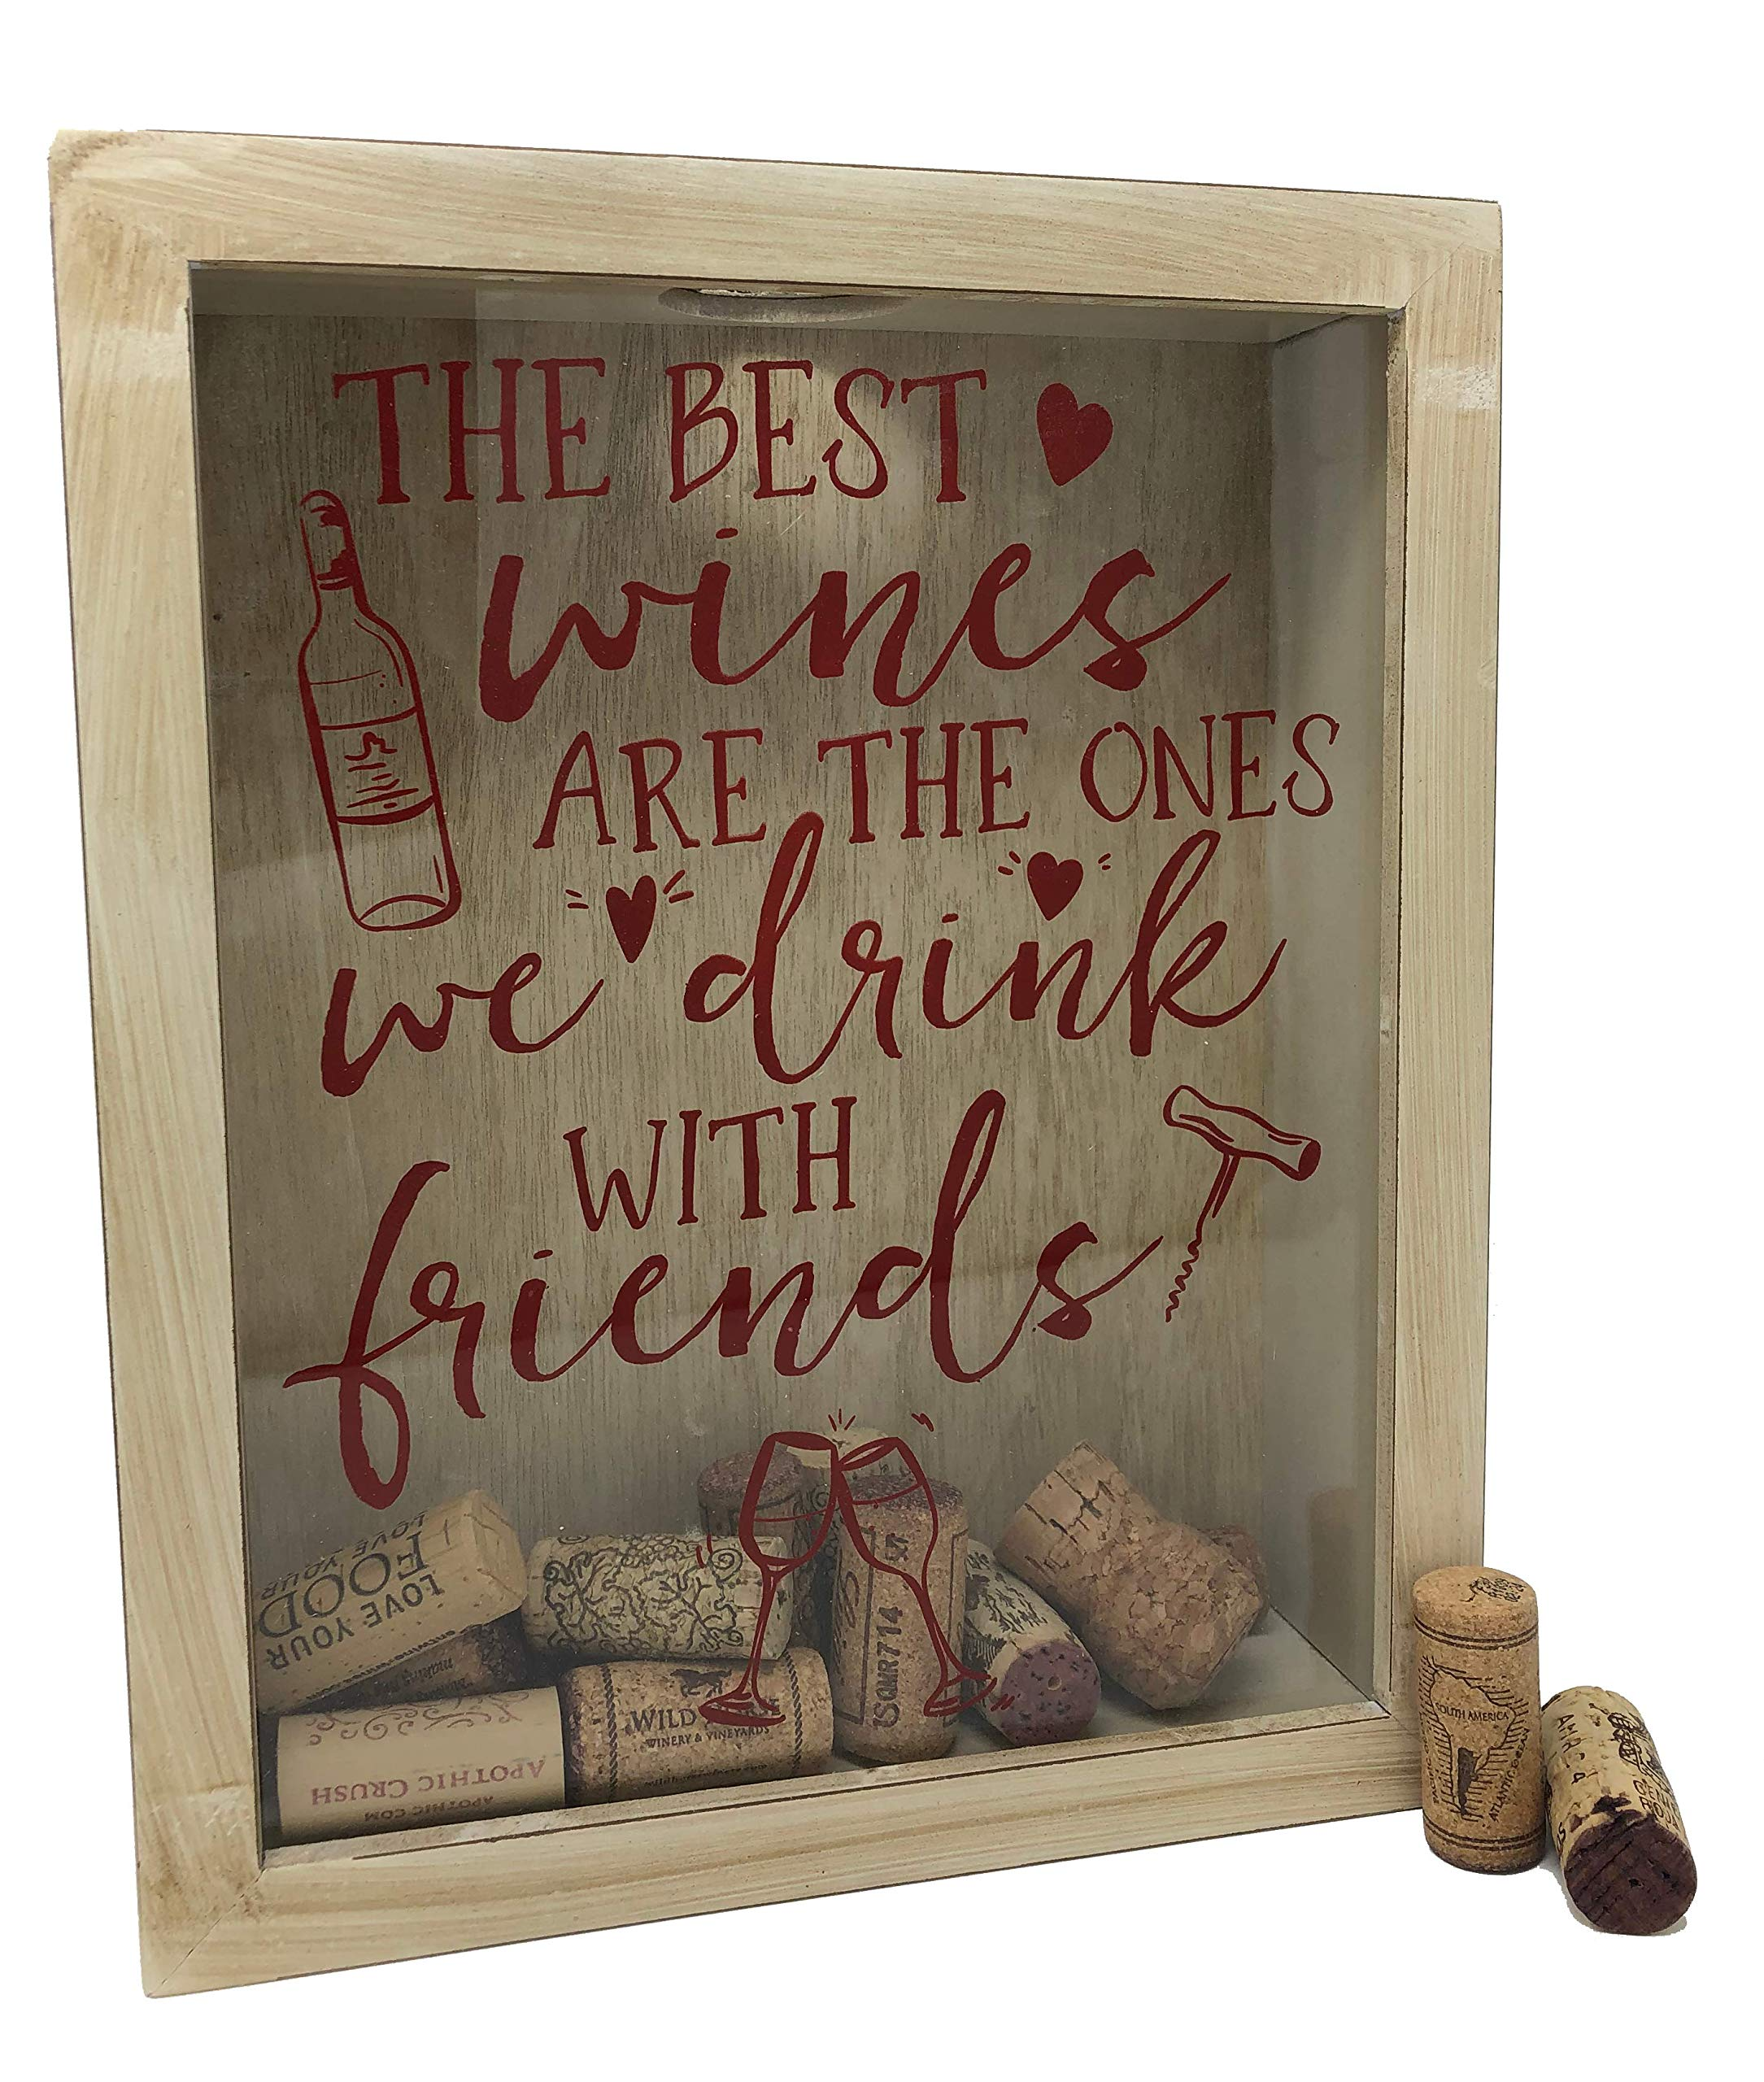 Wine Cork Shadow Box - Cork Holder Wine Decor For Home and Kitchen - Rustic White, 11 x 9 - Holds Over 60 Corks by Napa Gift Store